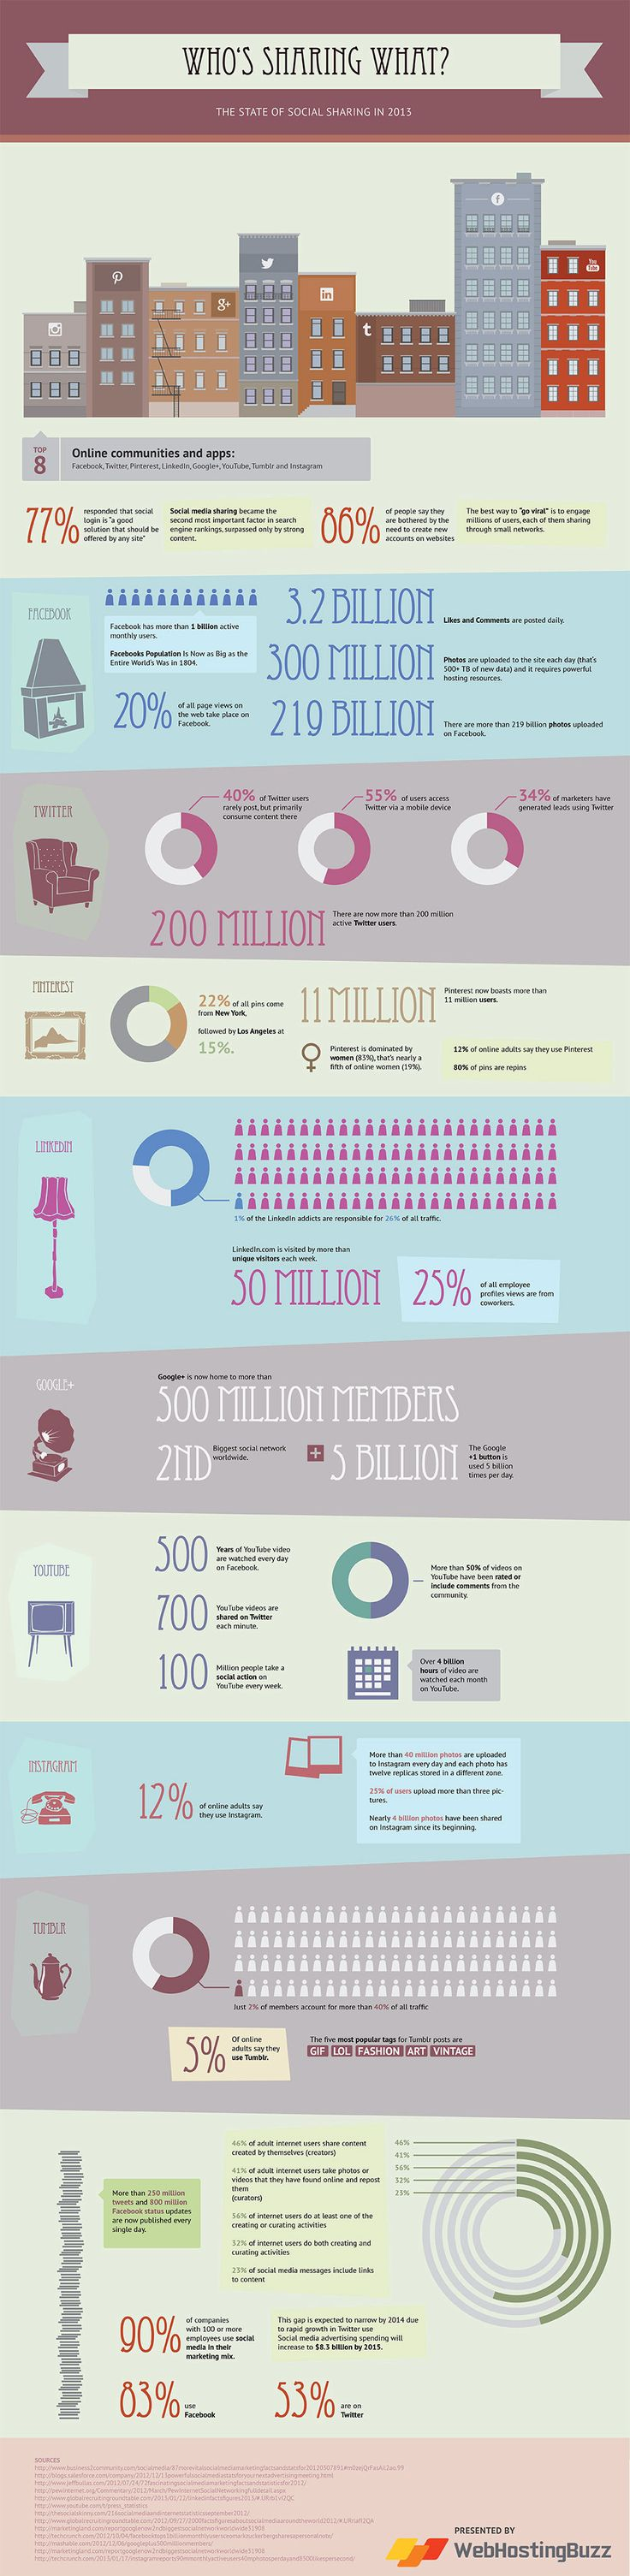 The State Of Social Sharing In 2013 [INFOGRAPHIC]